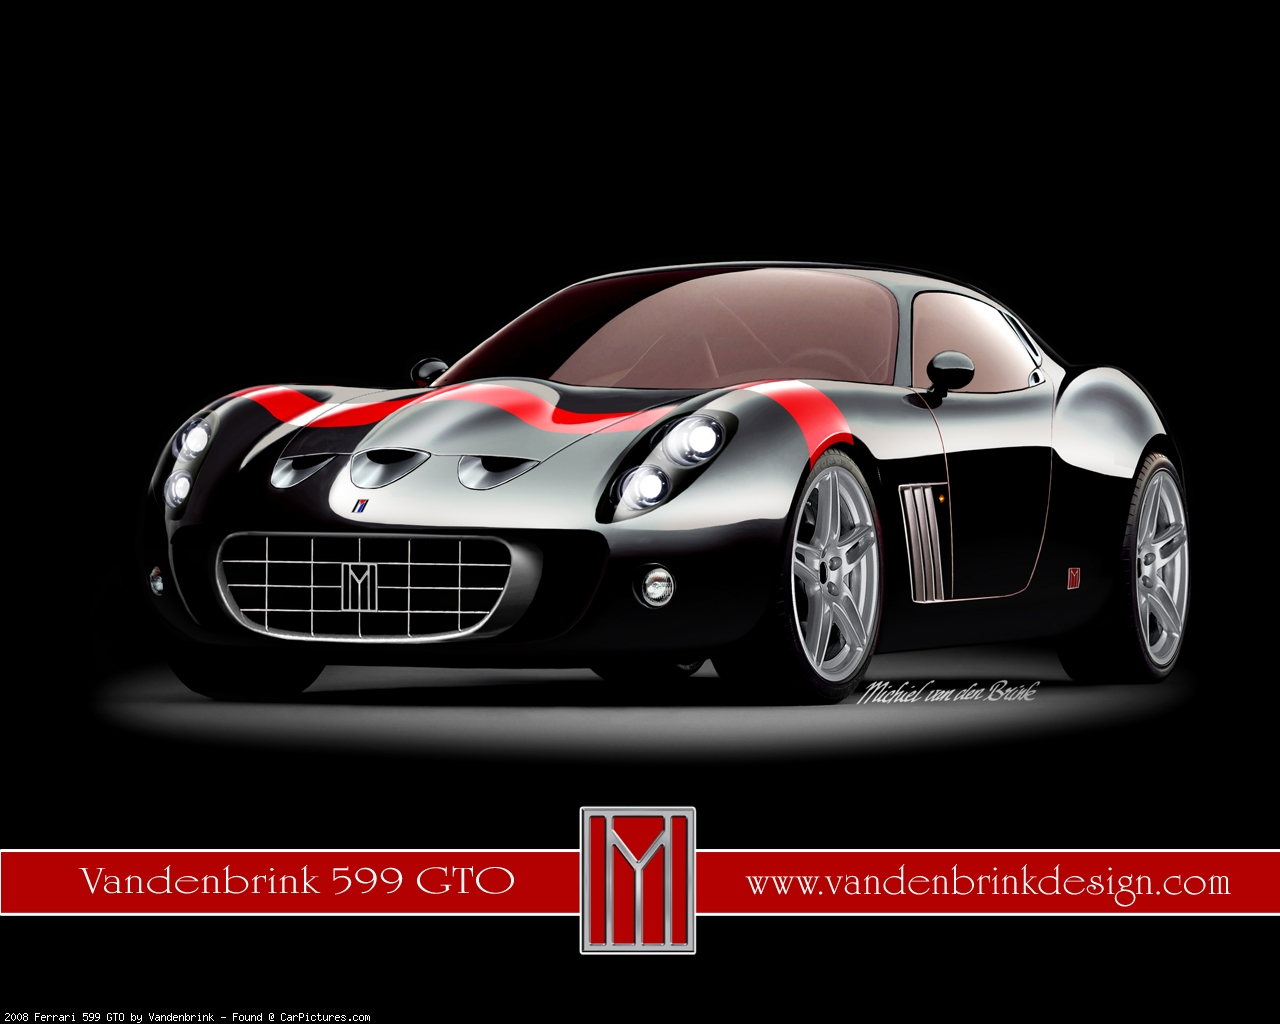 Vandenbrink Ferrari 599 GTO Mugello photo 45258